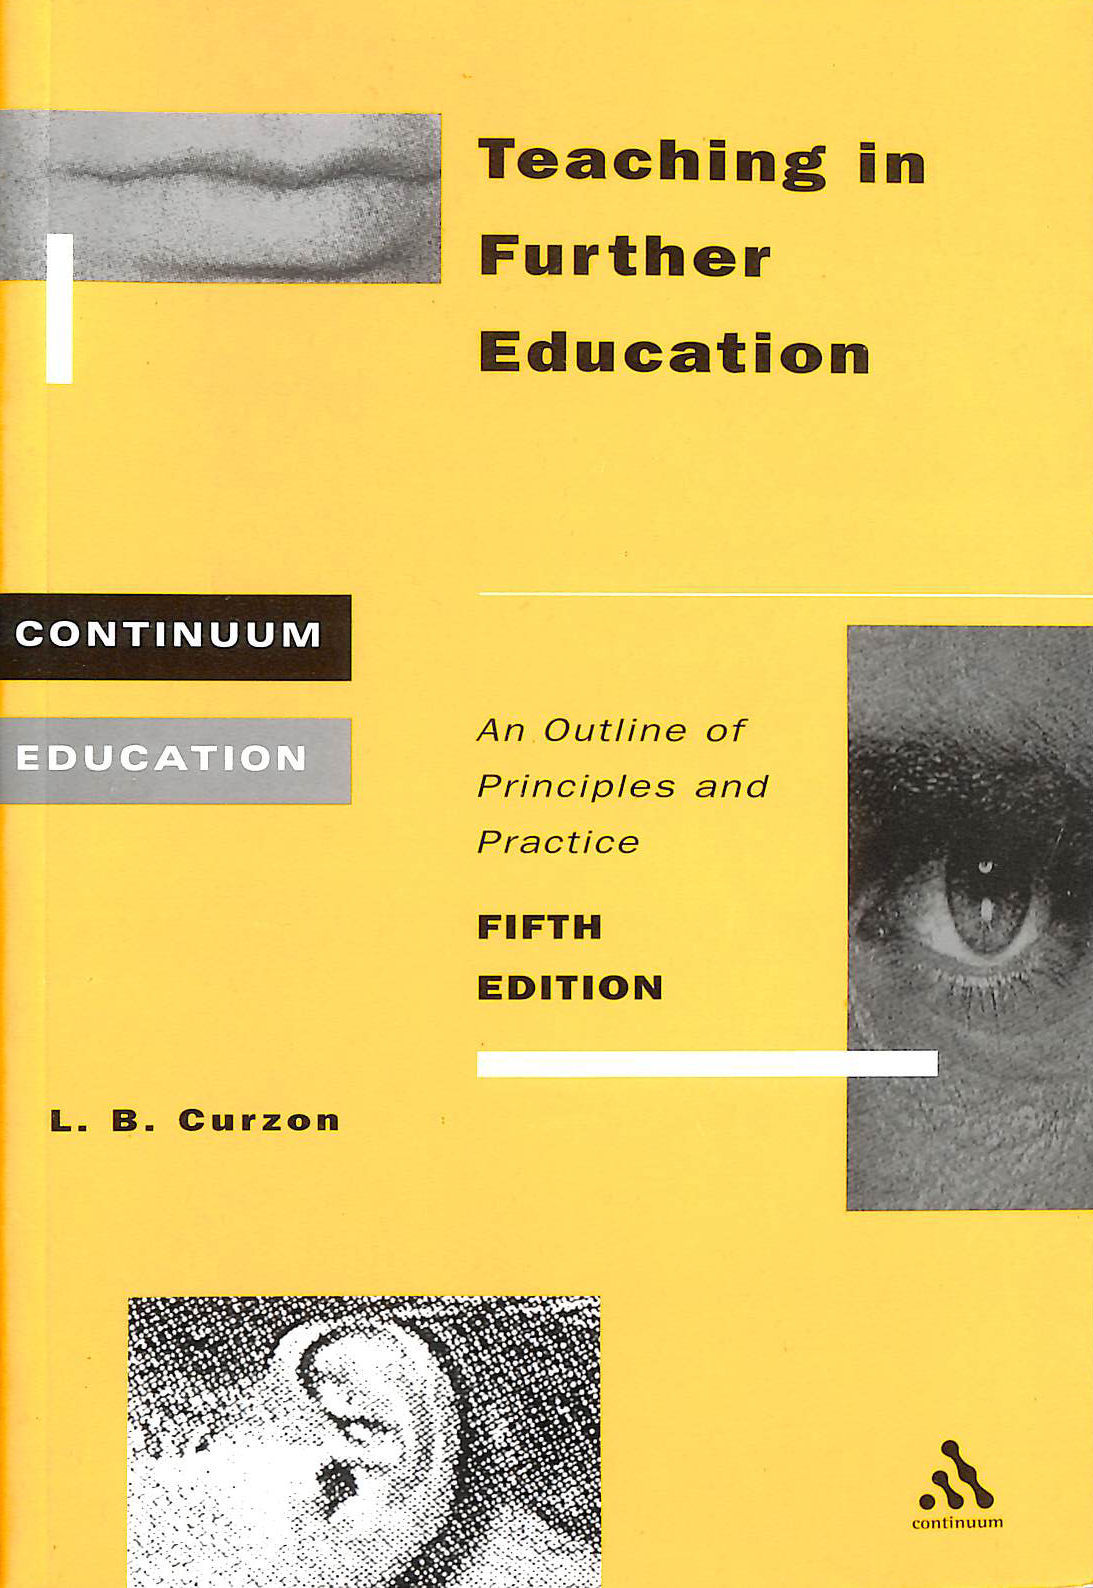 Image for Teaching in Further Education (Continuum Education)